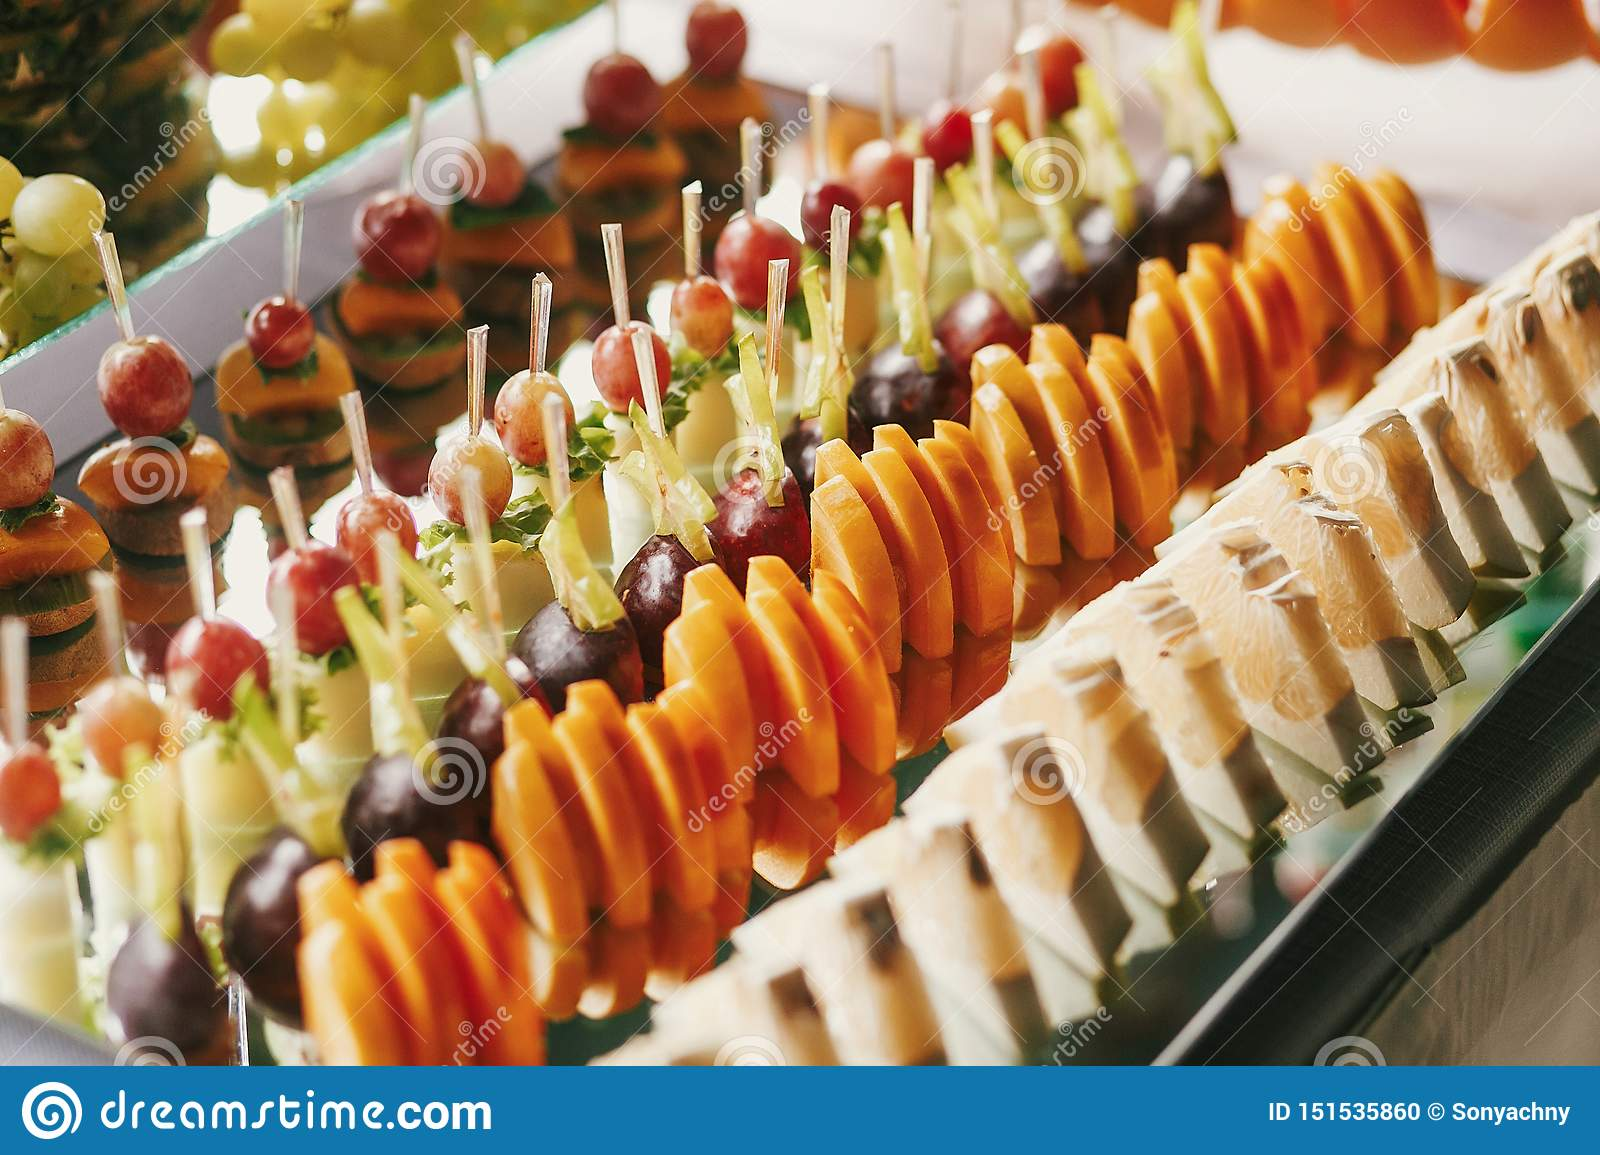 Delicious Fruits Appetizers Desserts On Stand Modern Sweet Table